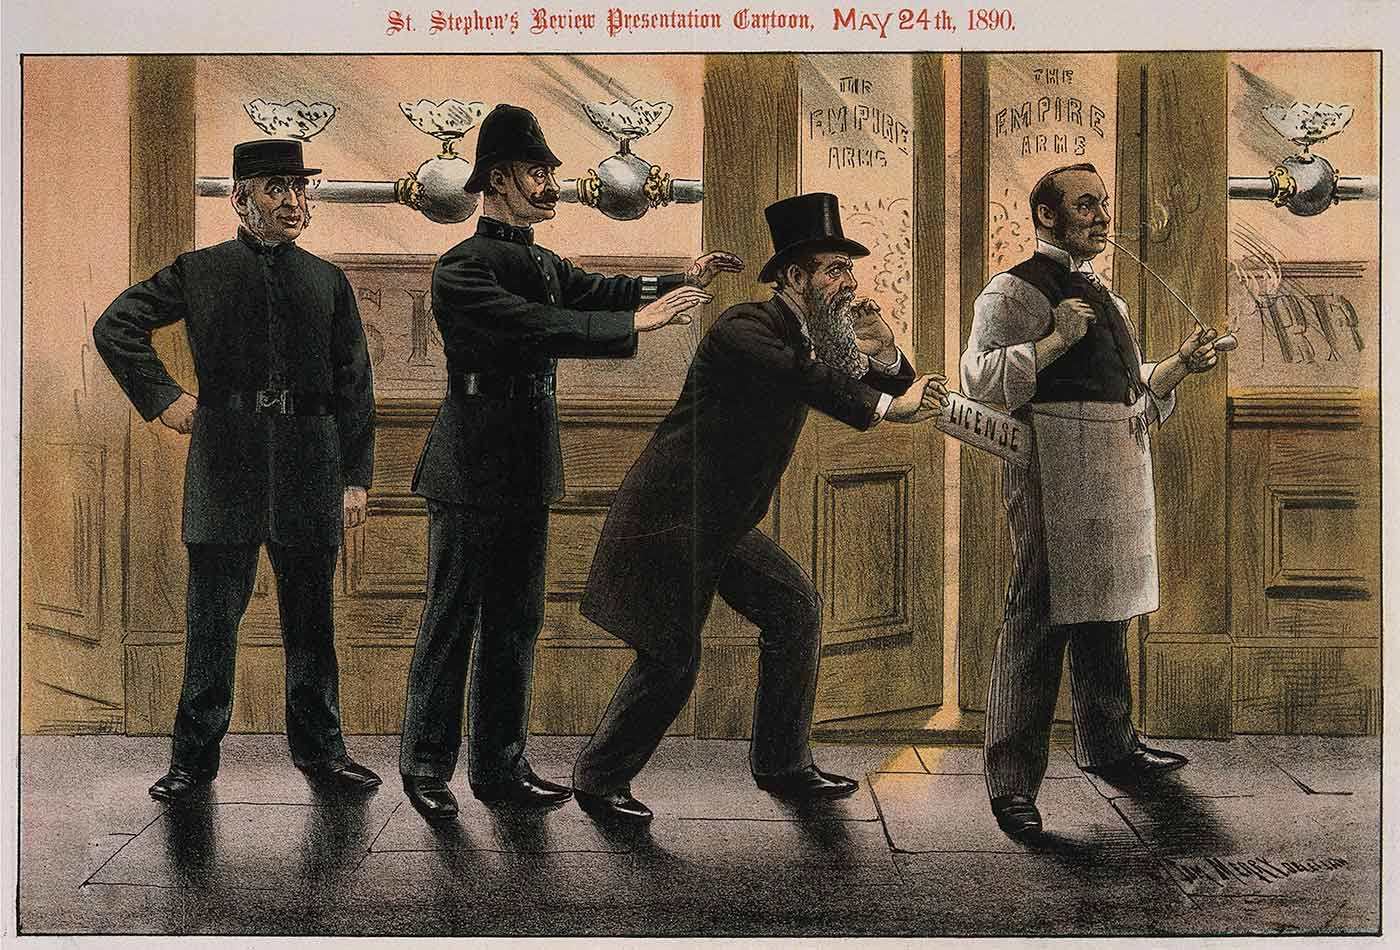 Caught in the Act, chromolithograph by T. Merry, 1890.